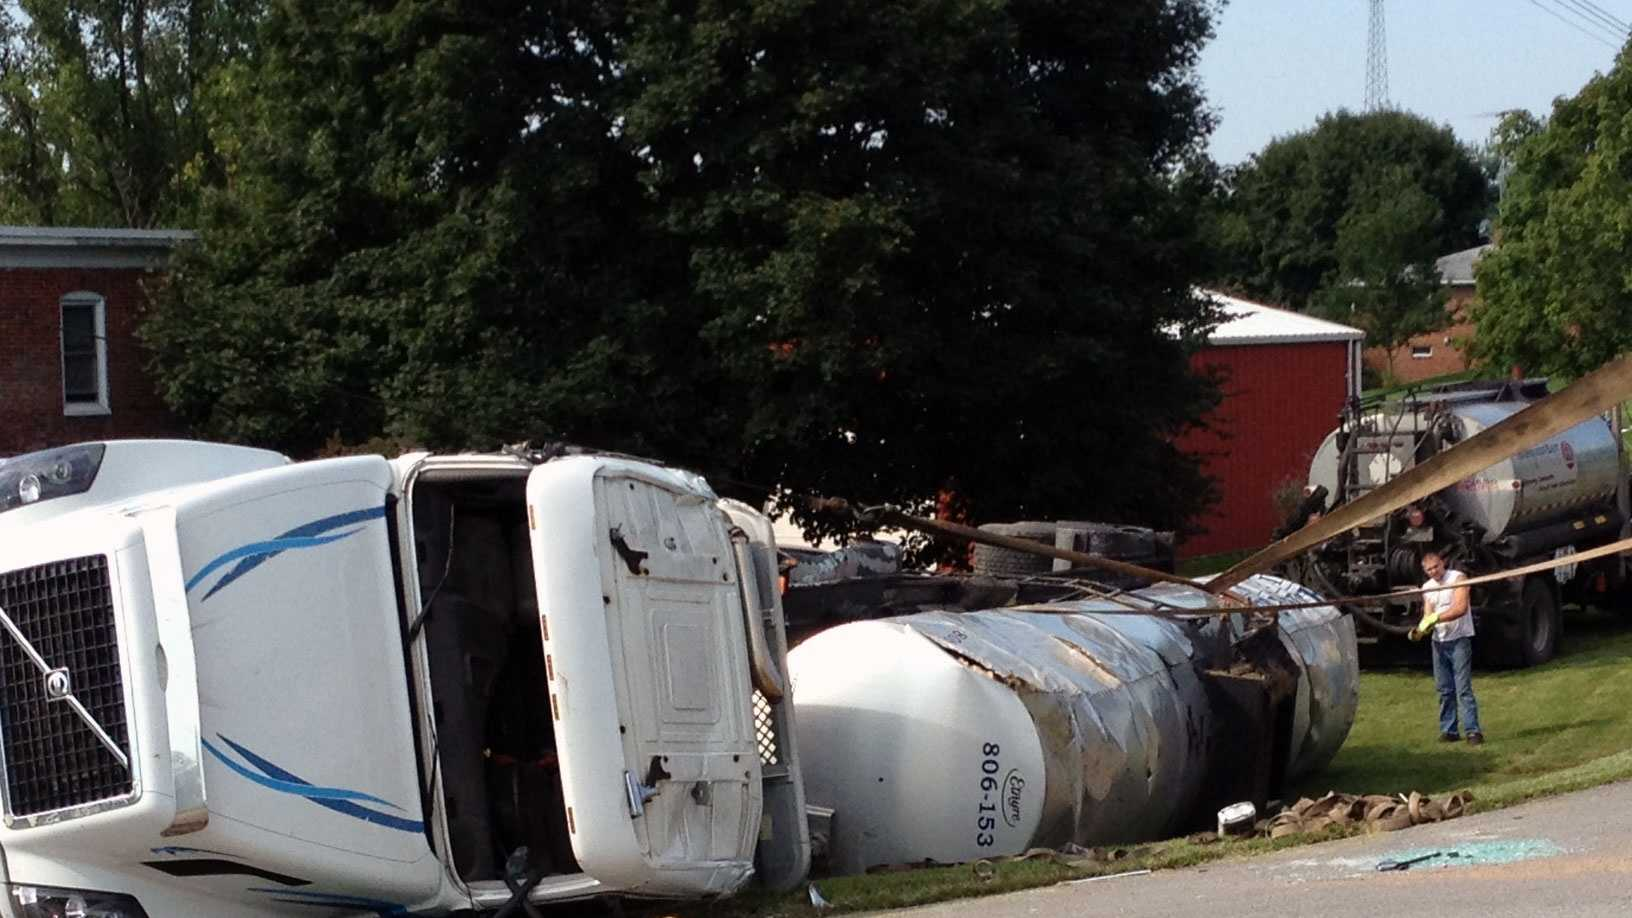 A tanker truck overturned early Monday in Heidelberg Township, York County.